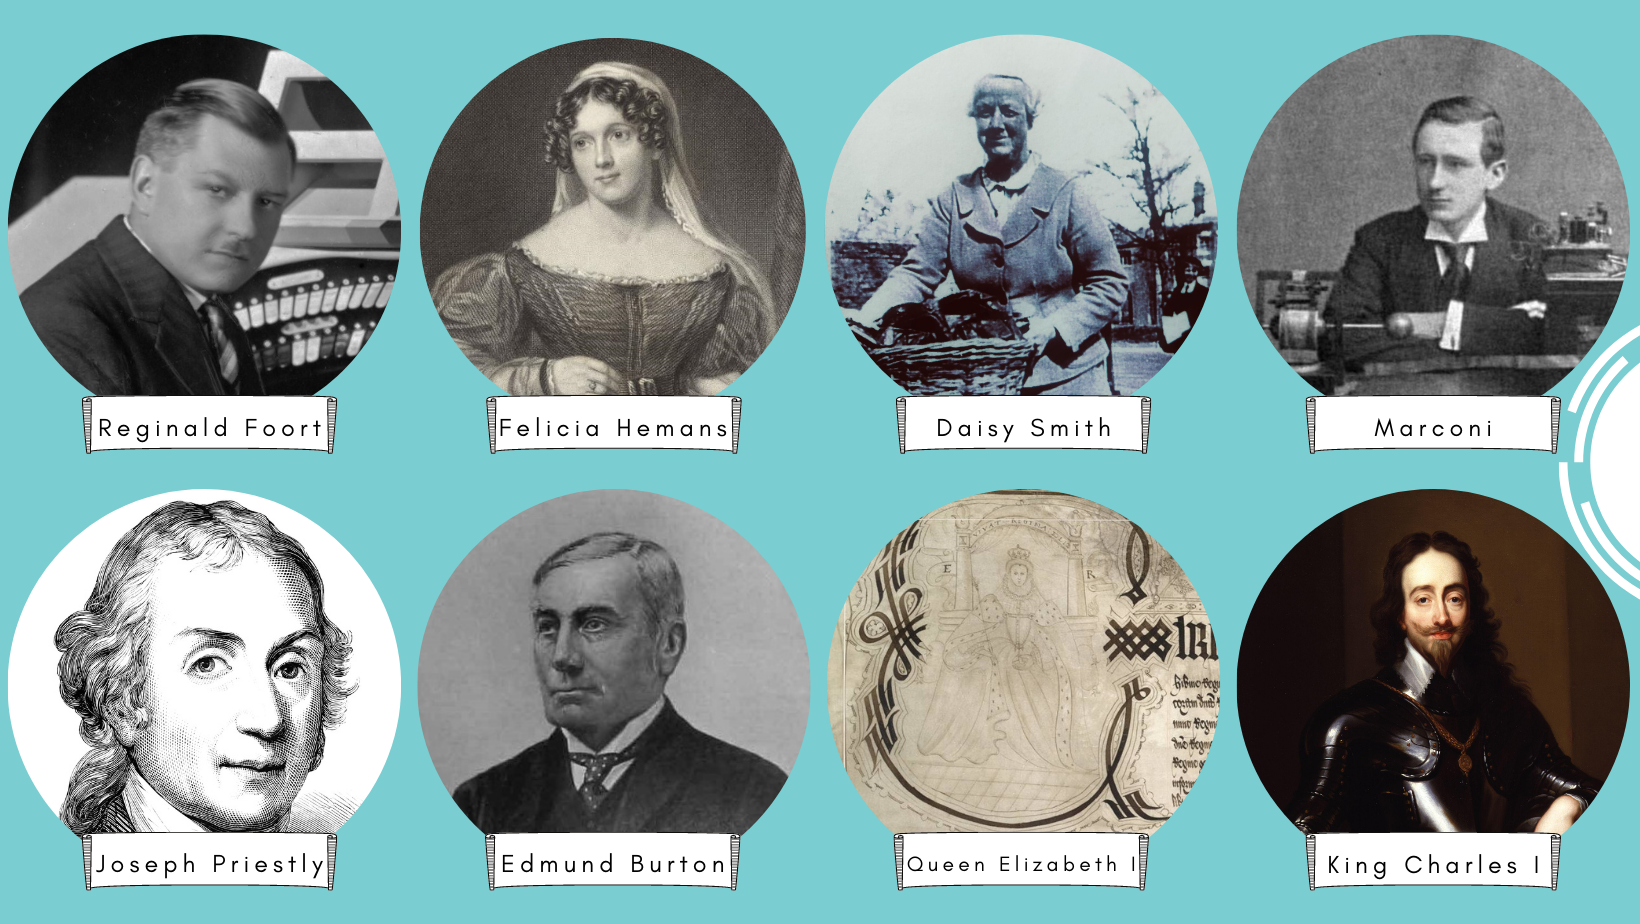 A few of the well-known people associated with Daventry